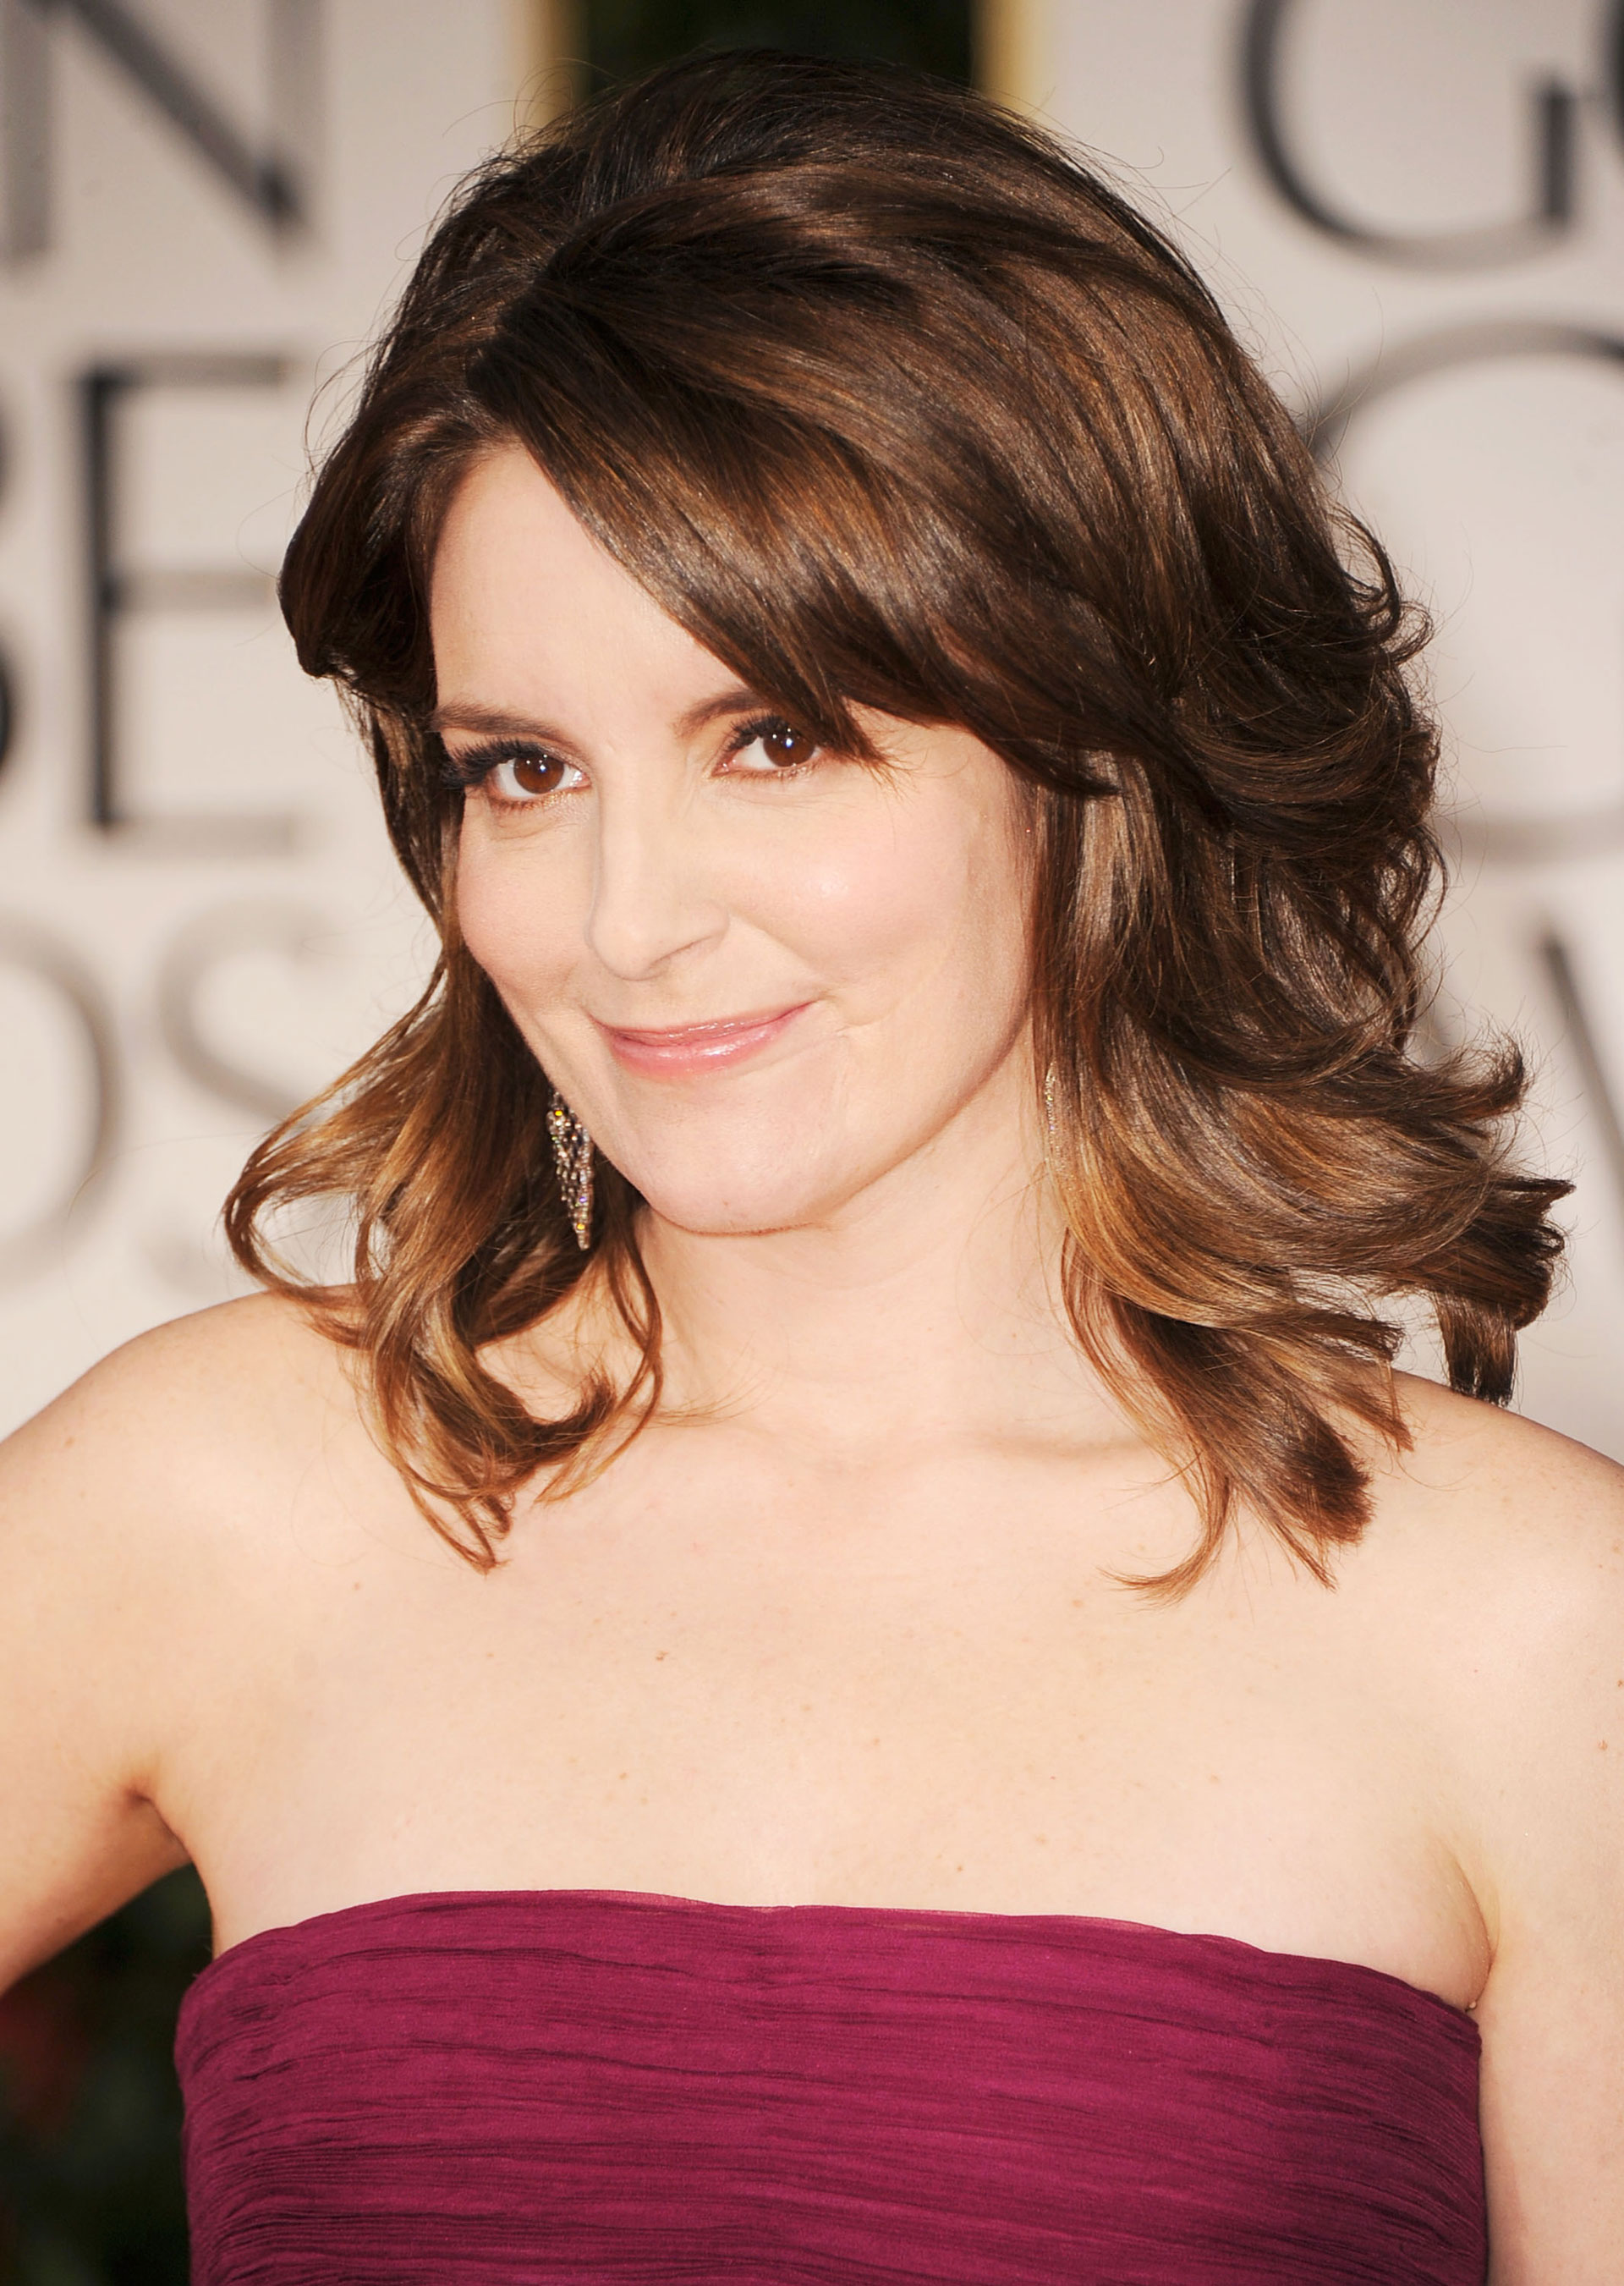 Swell 12 Best Hairstyles Over 40 Celeb Hair Over 40 Short Hairstyles Gunalazisus